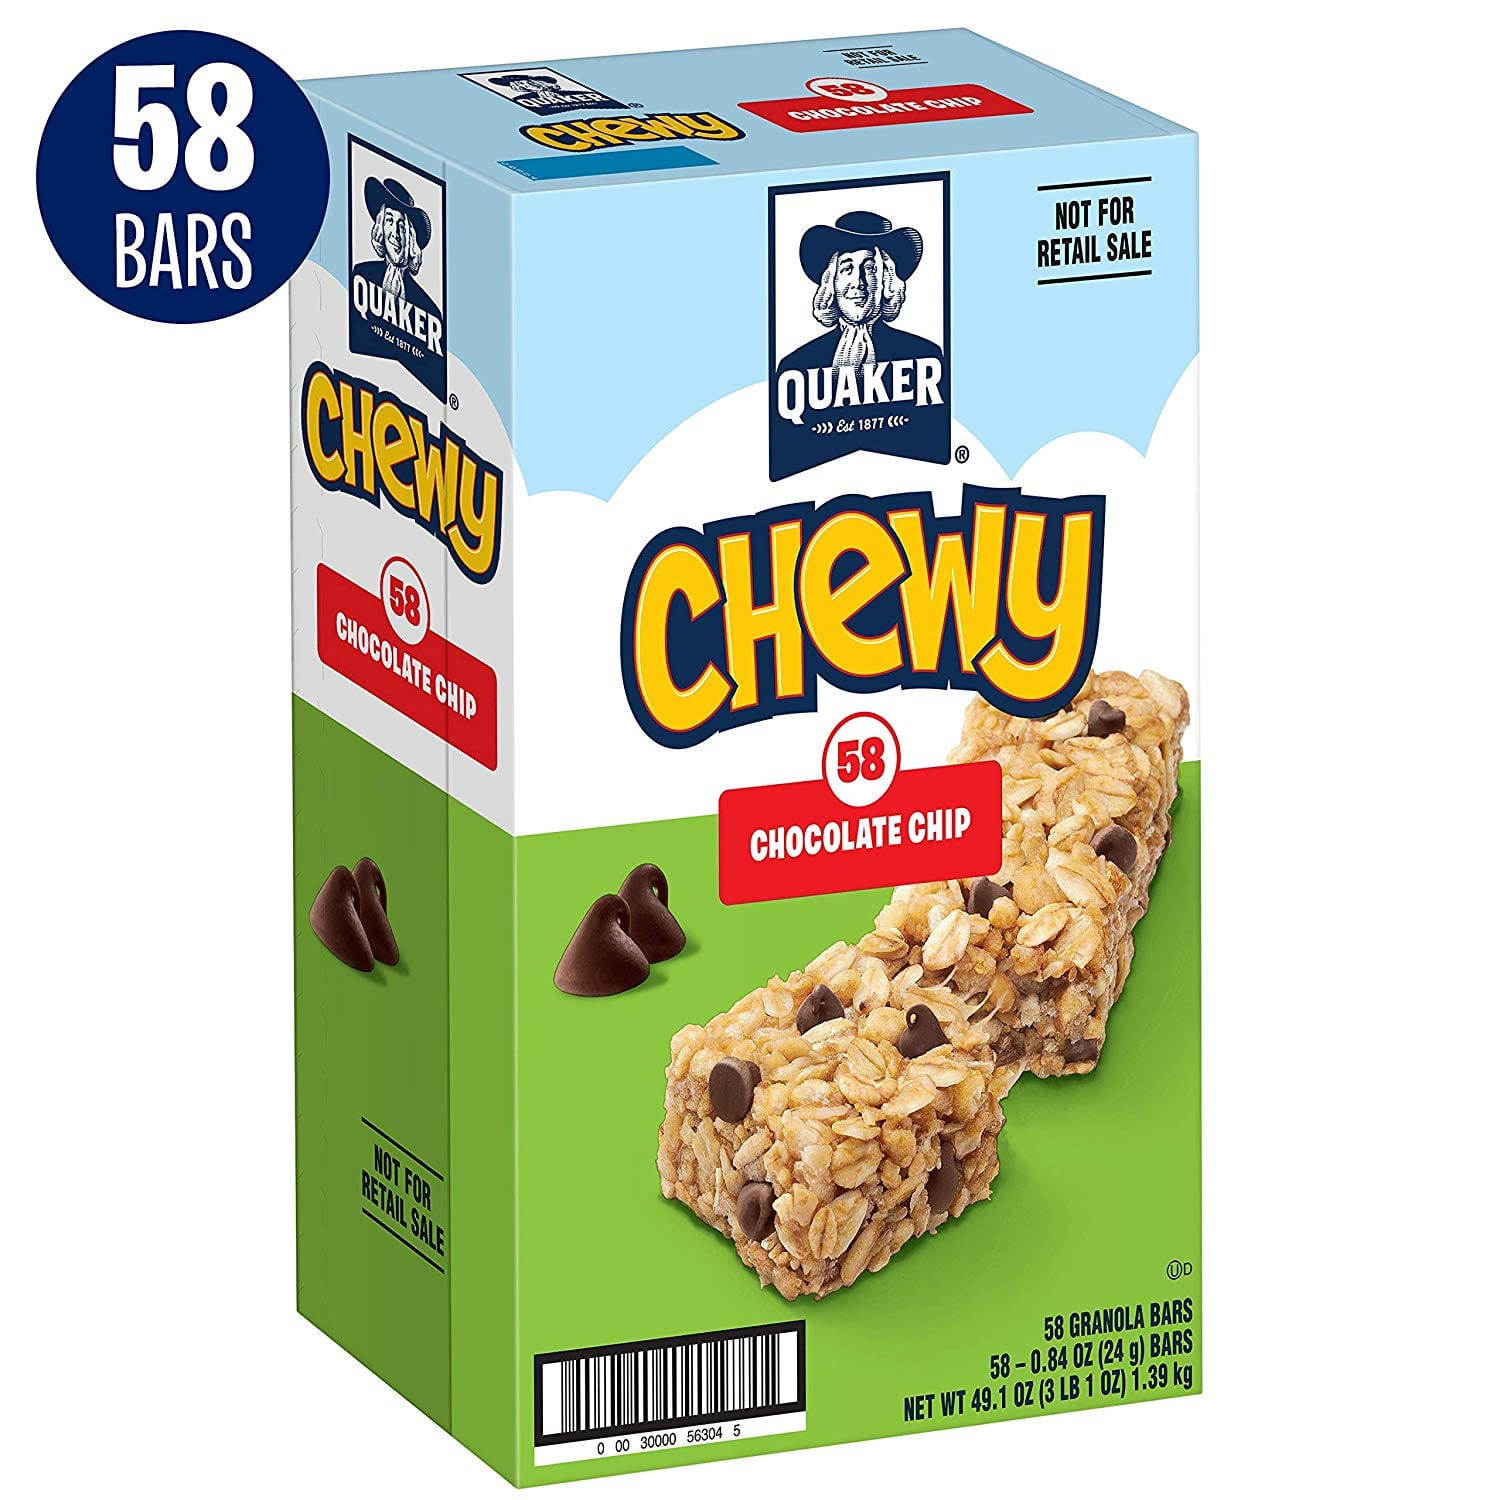 58-Count Quaker Chewy Granola Bars (Chocolate Chip) $7.10 w/ S&S & More + Free S&H